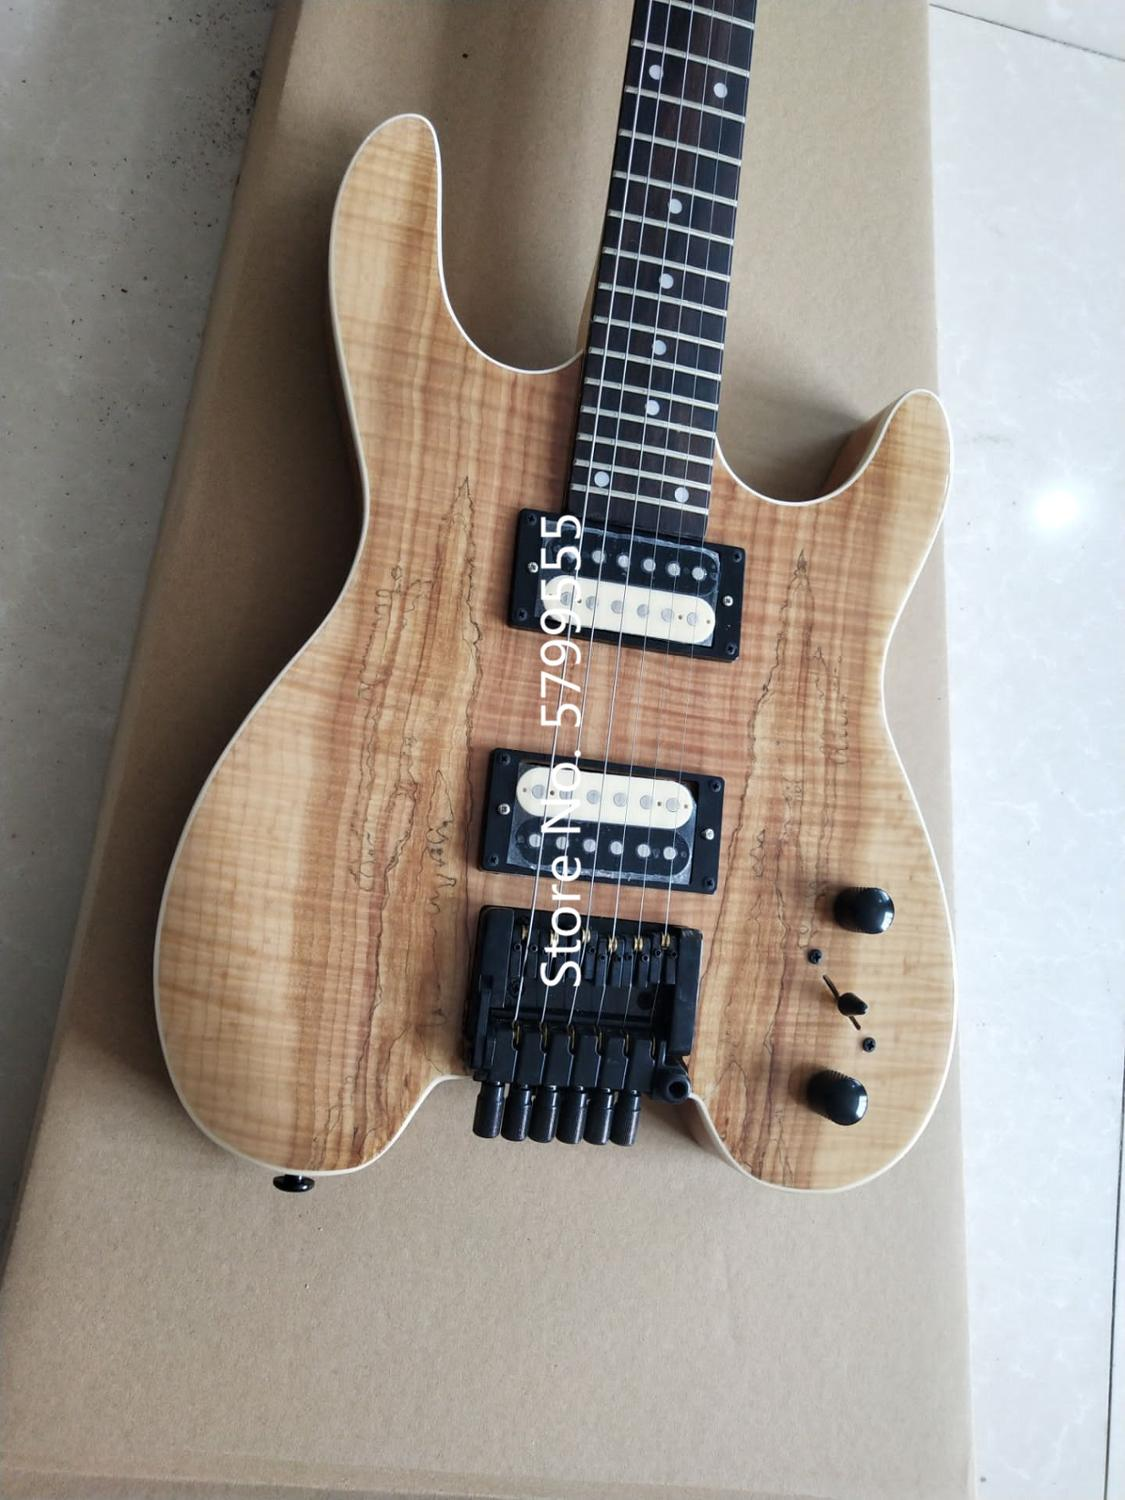 New 6-string headless electric guitar, crafted, multi-color optional, flame maple veneer, rosewood fingerboard, free shipping enlarge